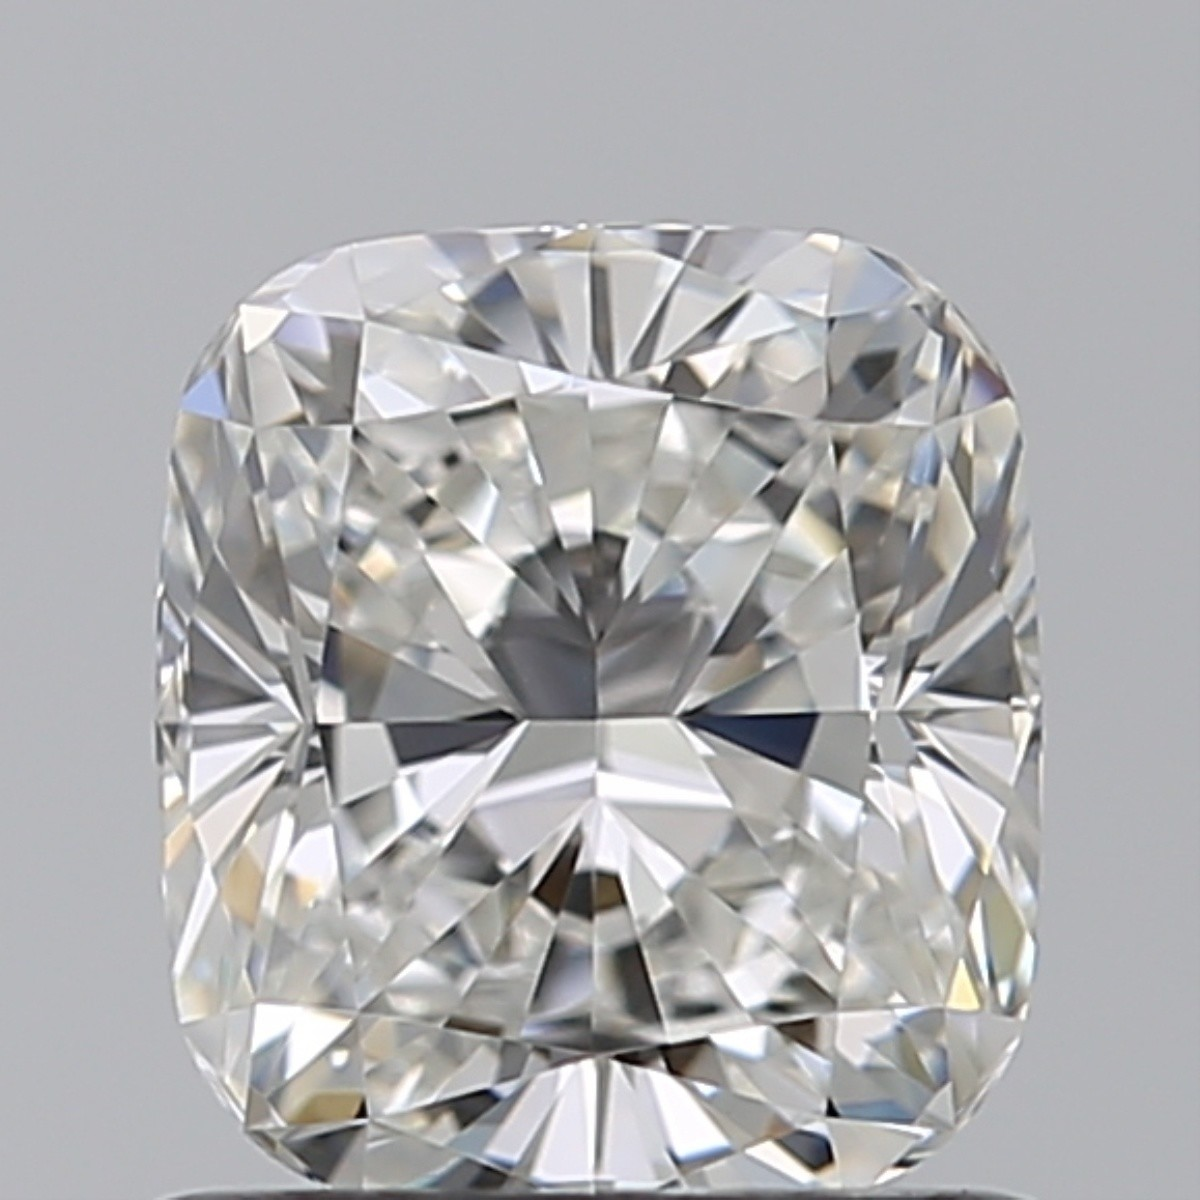 1.01 Carat Cushion Brilliant Diamond (F/VVS1)